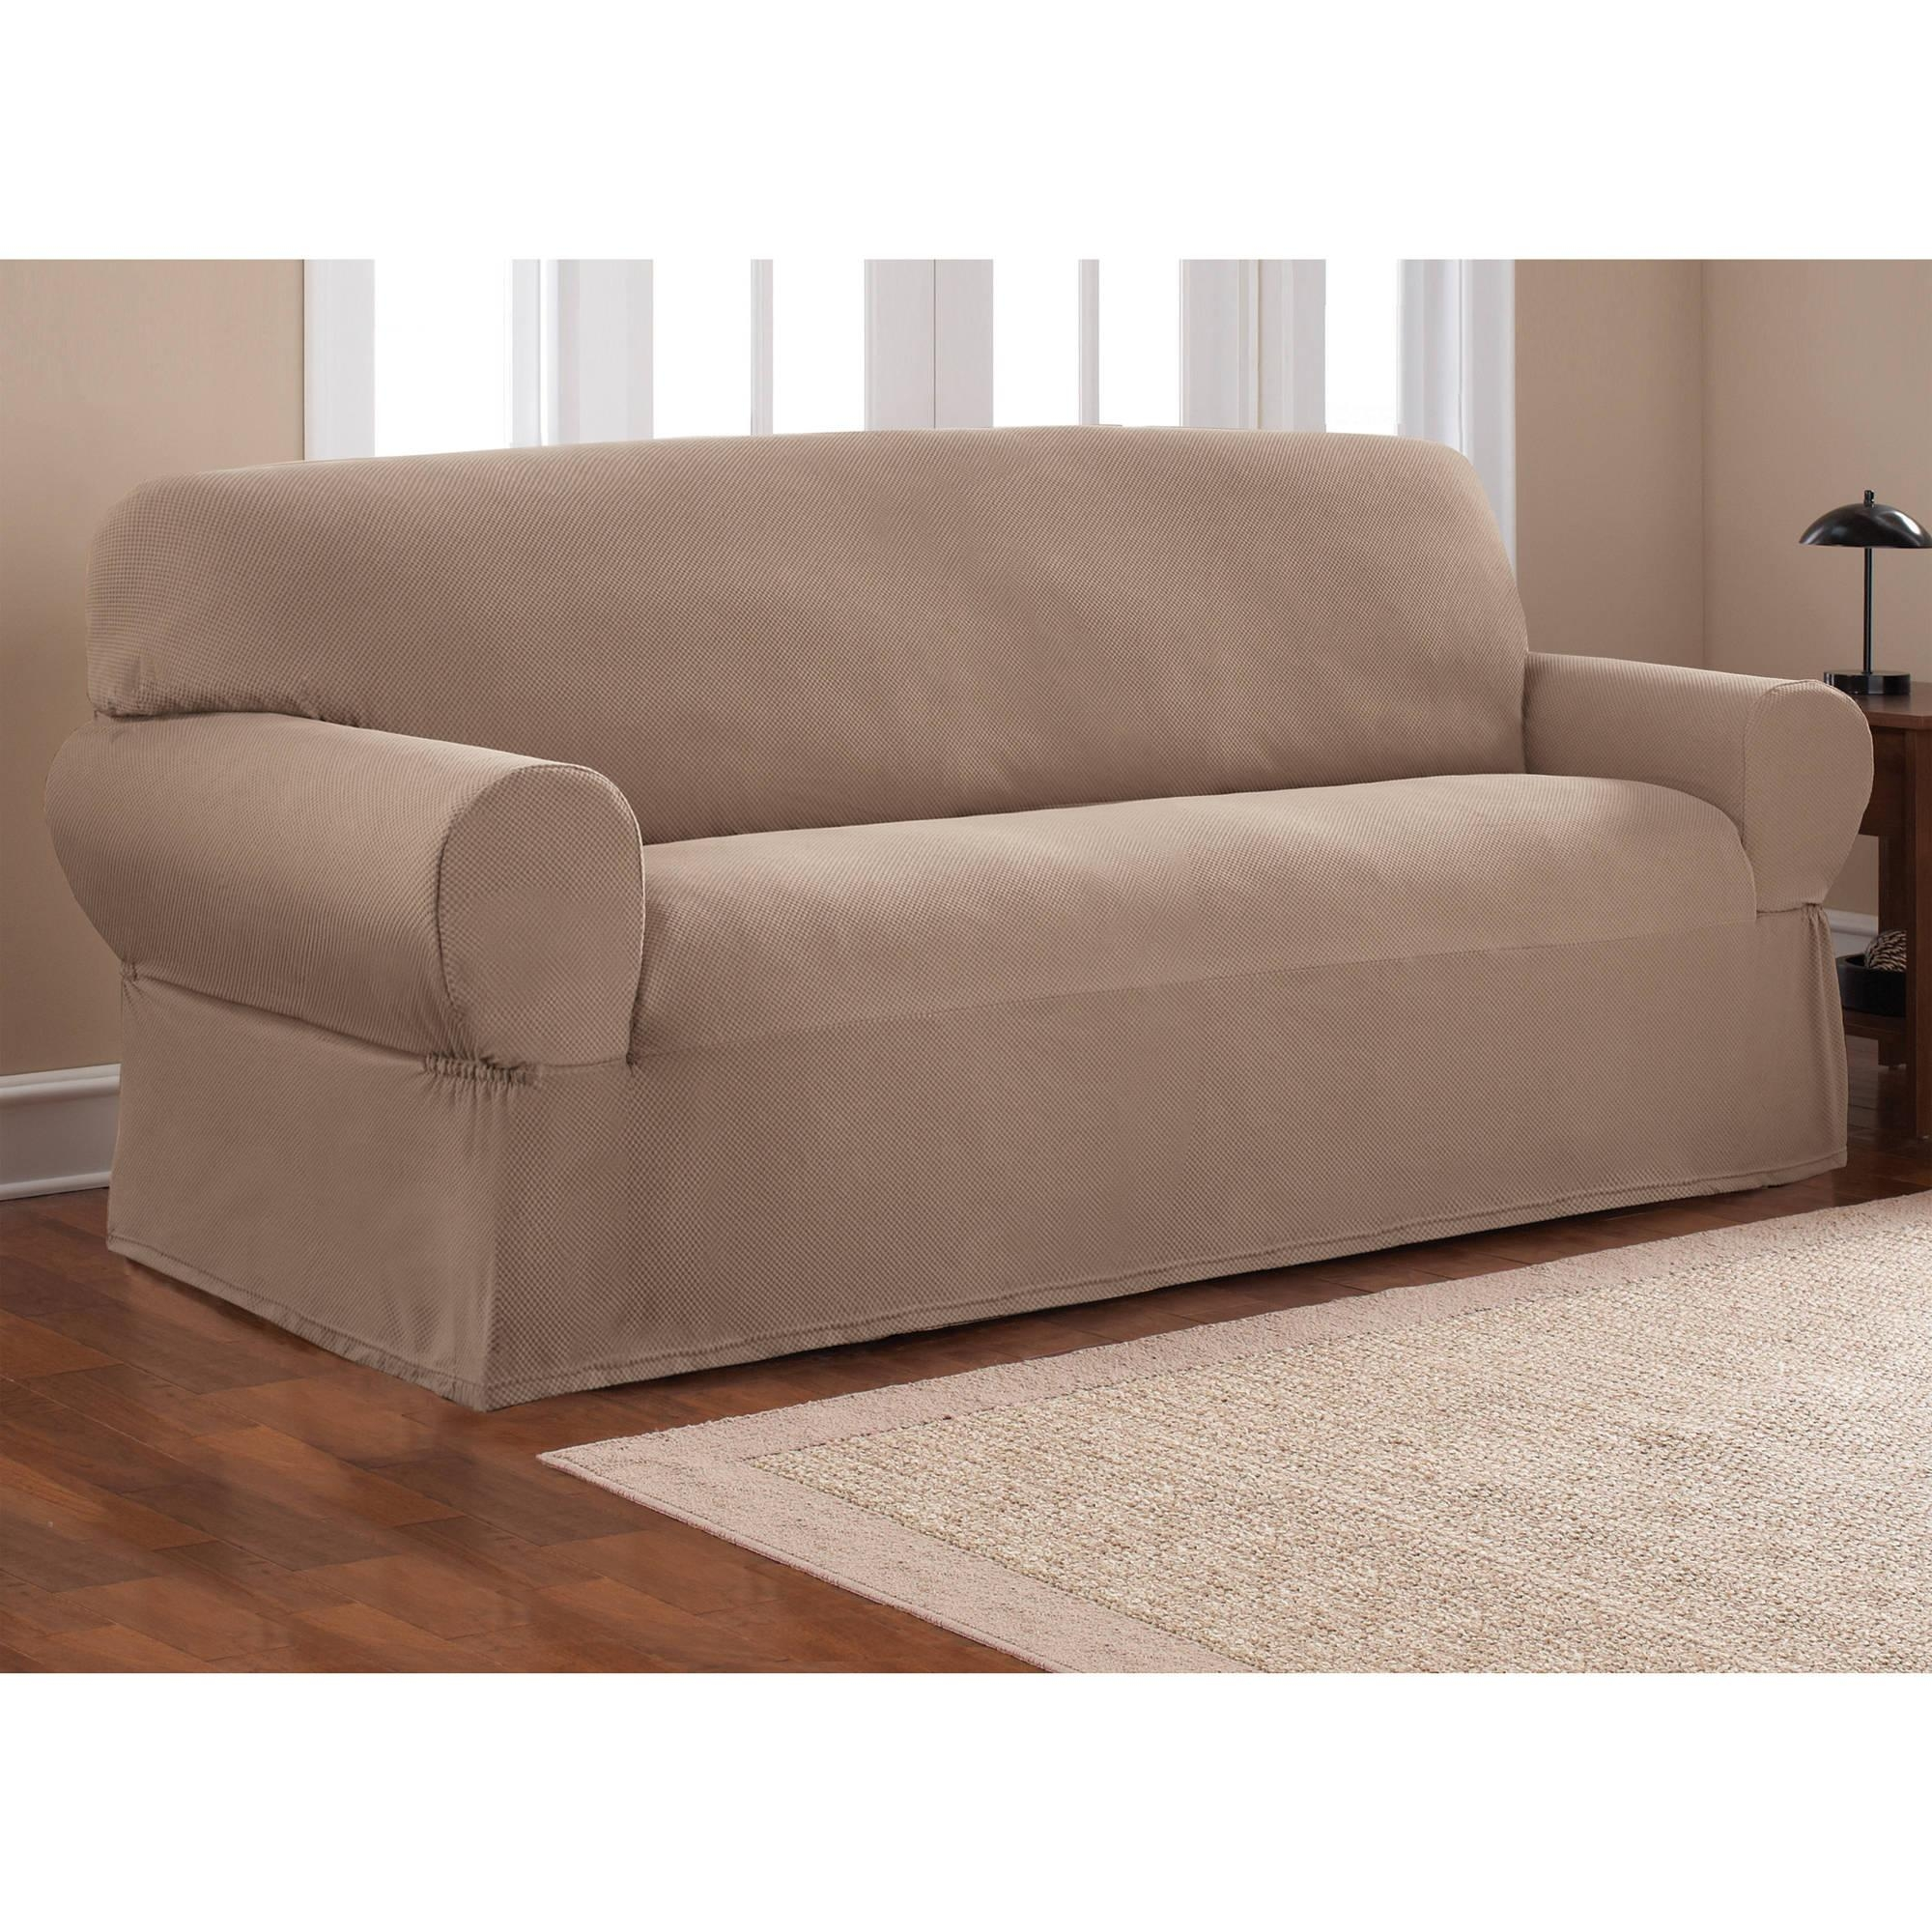 Mainstays 1 Piece Stretch Fabric Sofa Slipcover – Walmart Intended For Mainstay Sofas (Image 5 of 20)